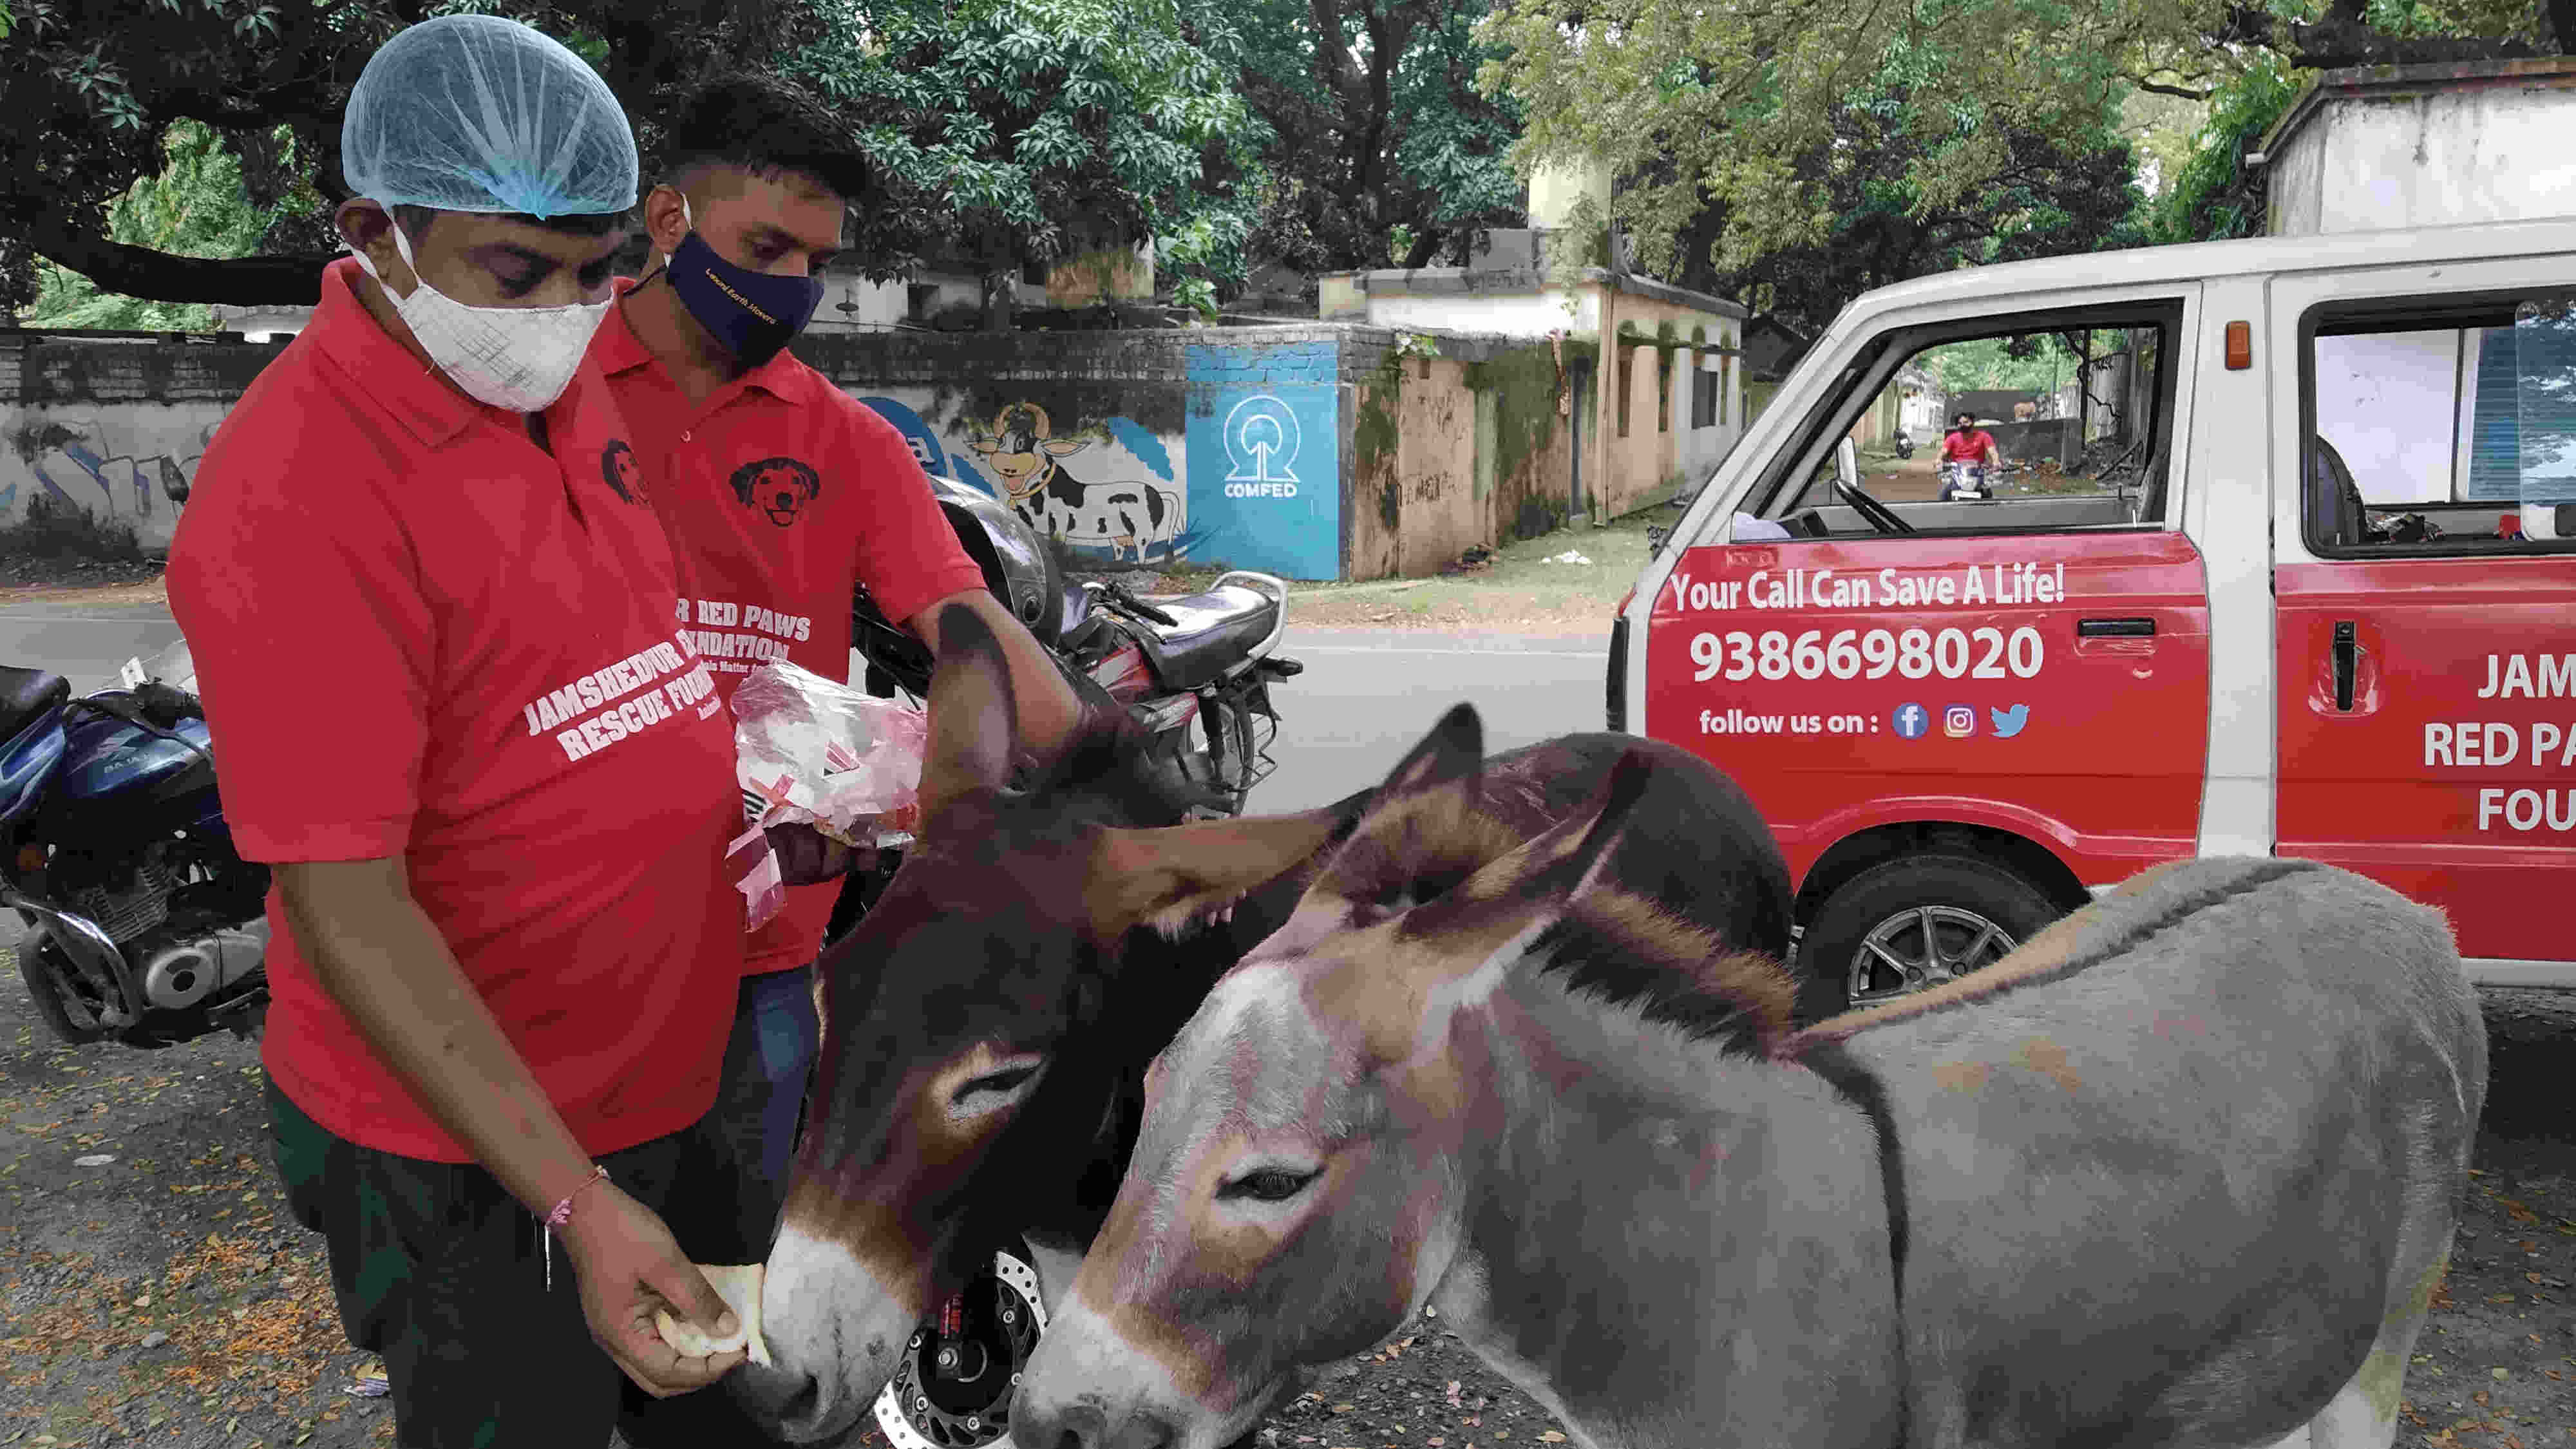 A member of Jamshedpur Red Paws Rescue Foundation feeds a donkey near G Town Ground in Jamshedpur on Sunday.